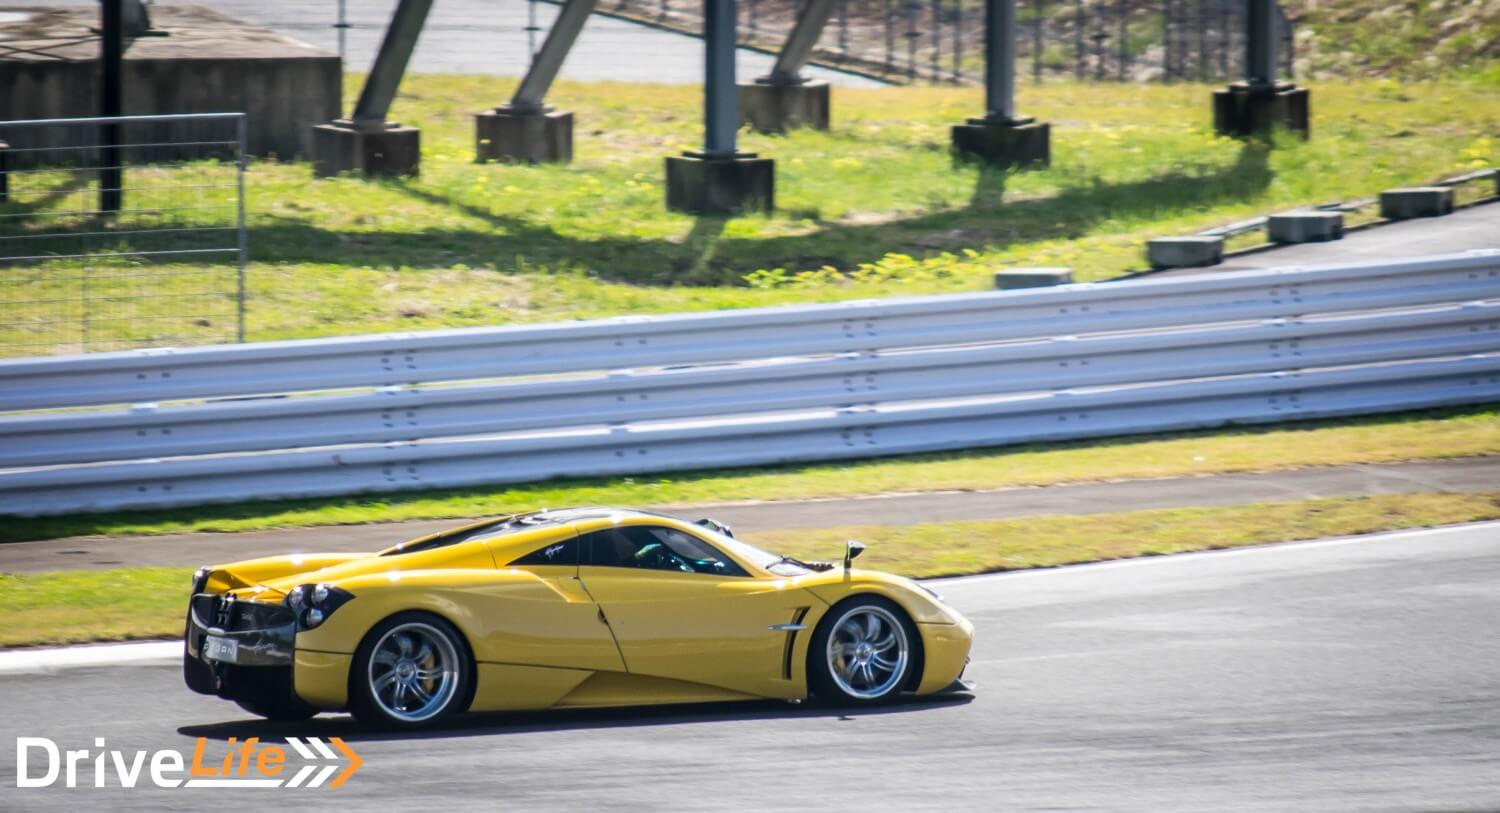 pagani-touge-drive-japan-fuji-huayra-yellow